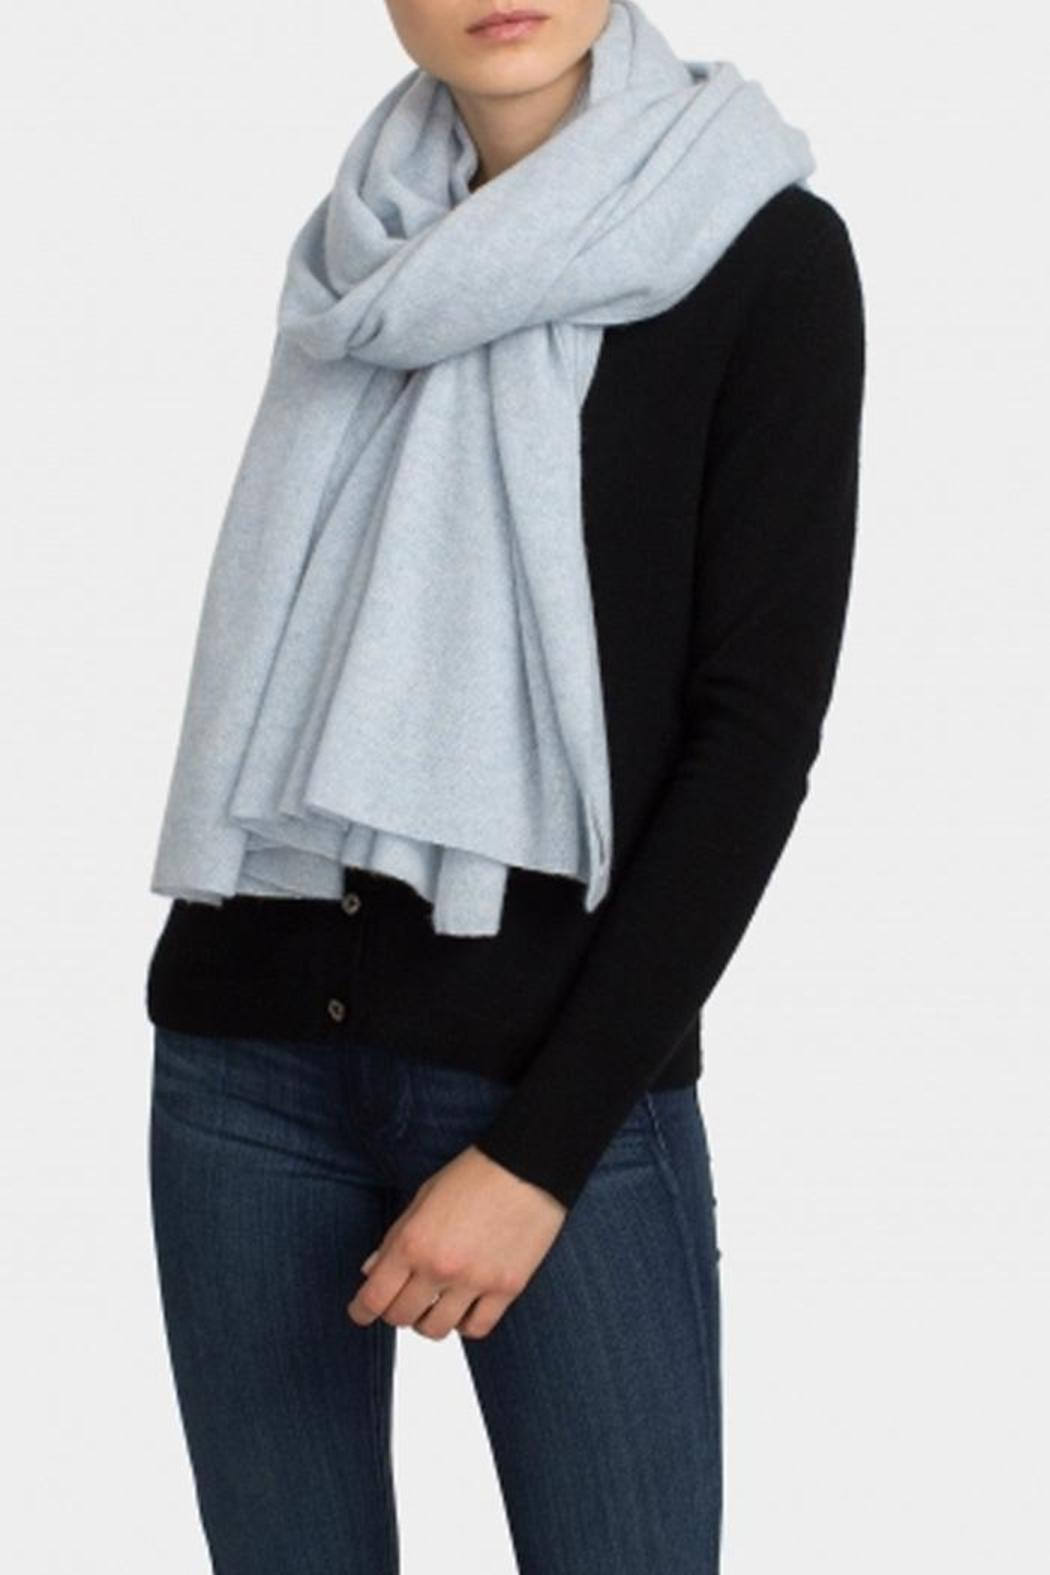 White and Warren Cashmere Travel Wrap from Canada by ...